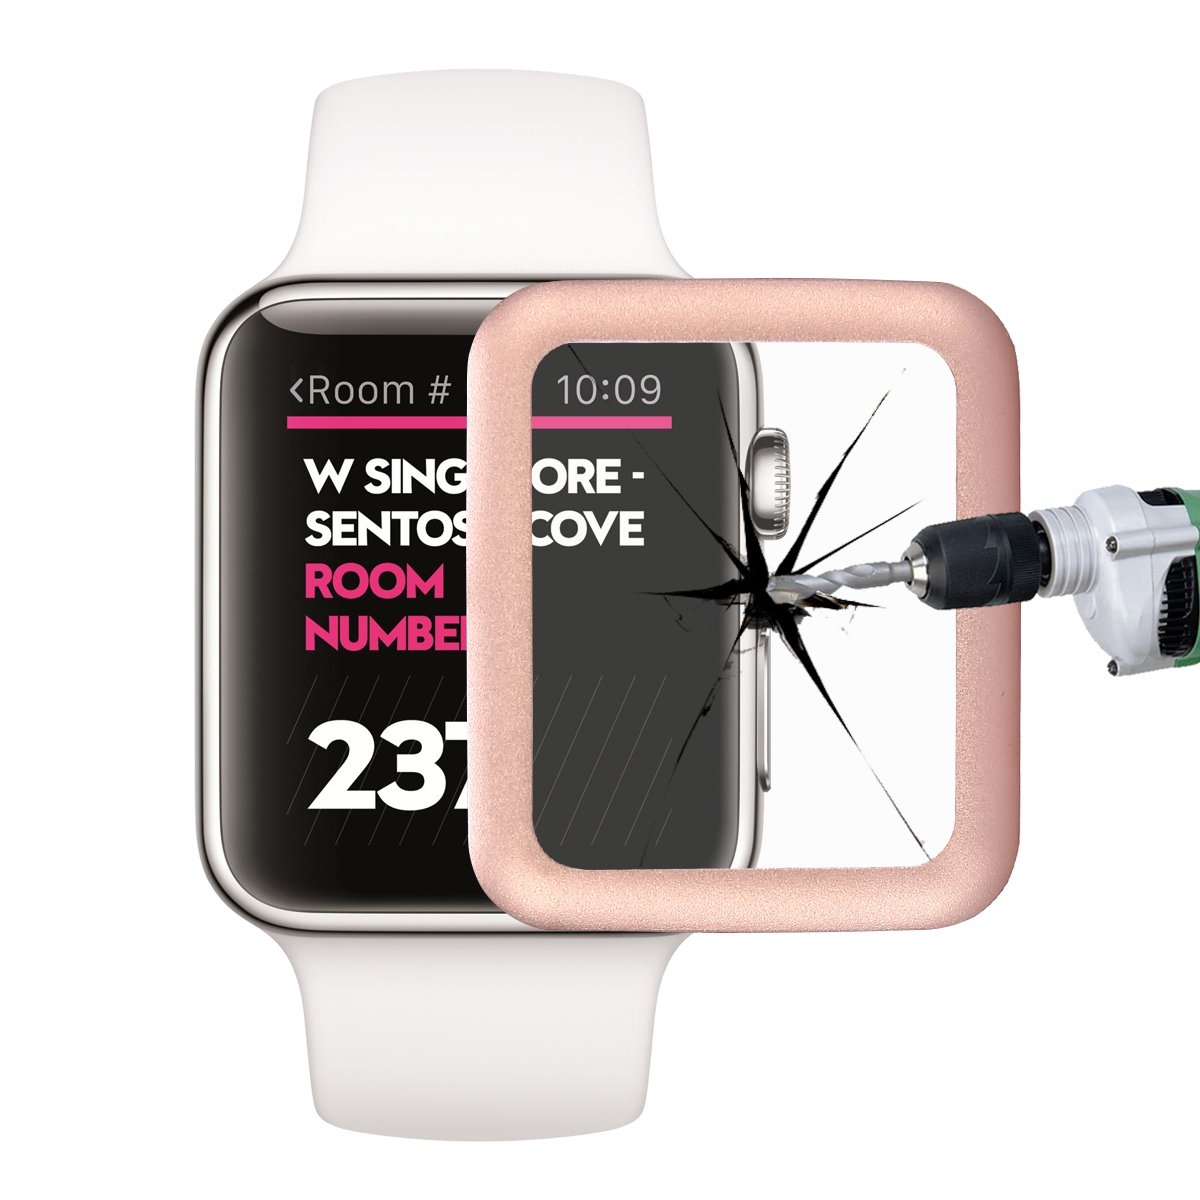 rose border safe glass for Apple watch